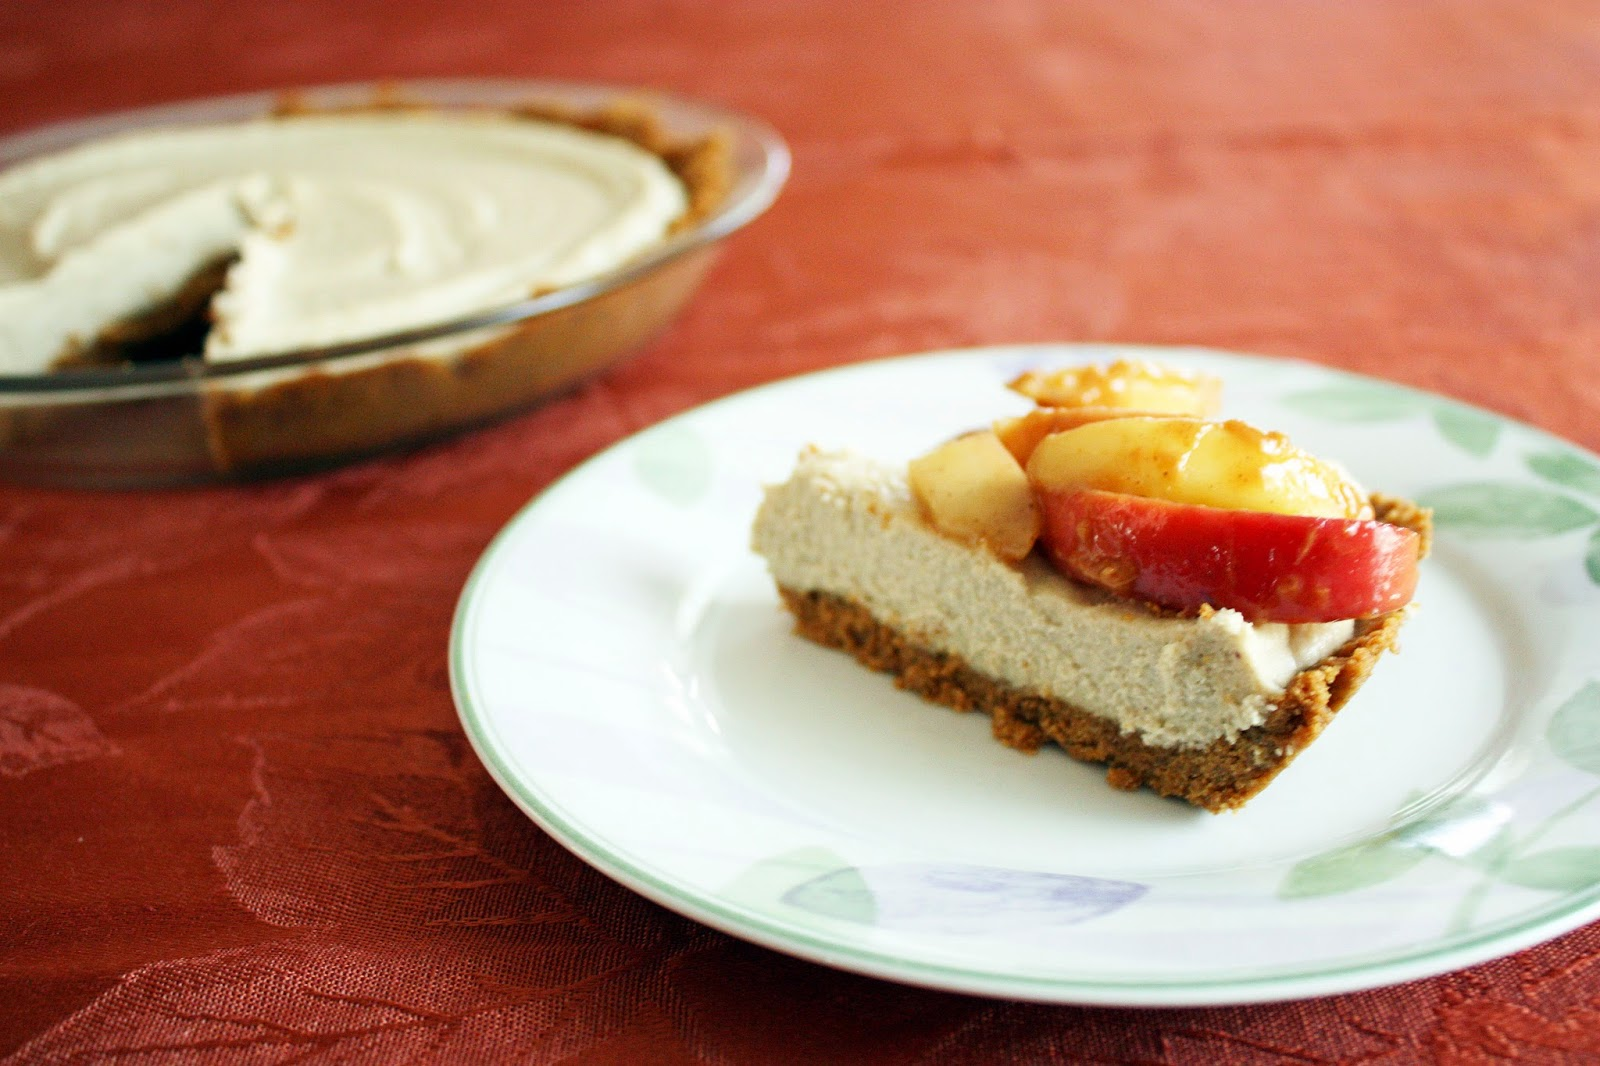 vegan apple peanut butter cheesecake pie with sauteed apples